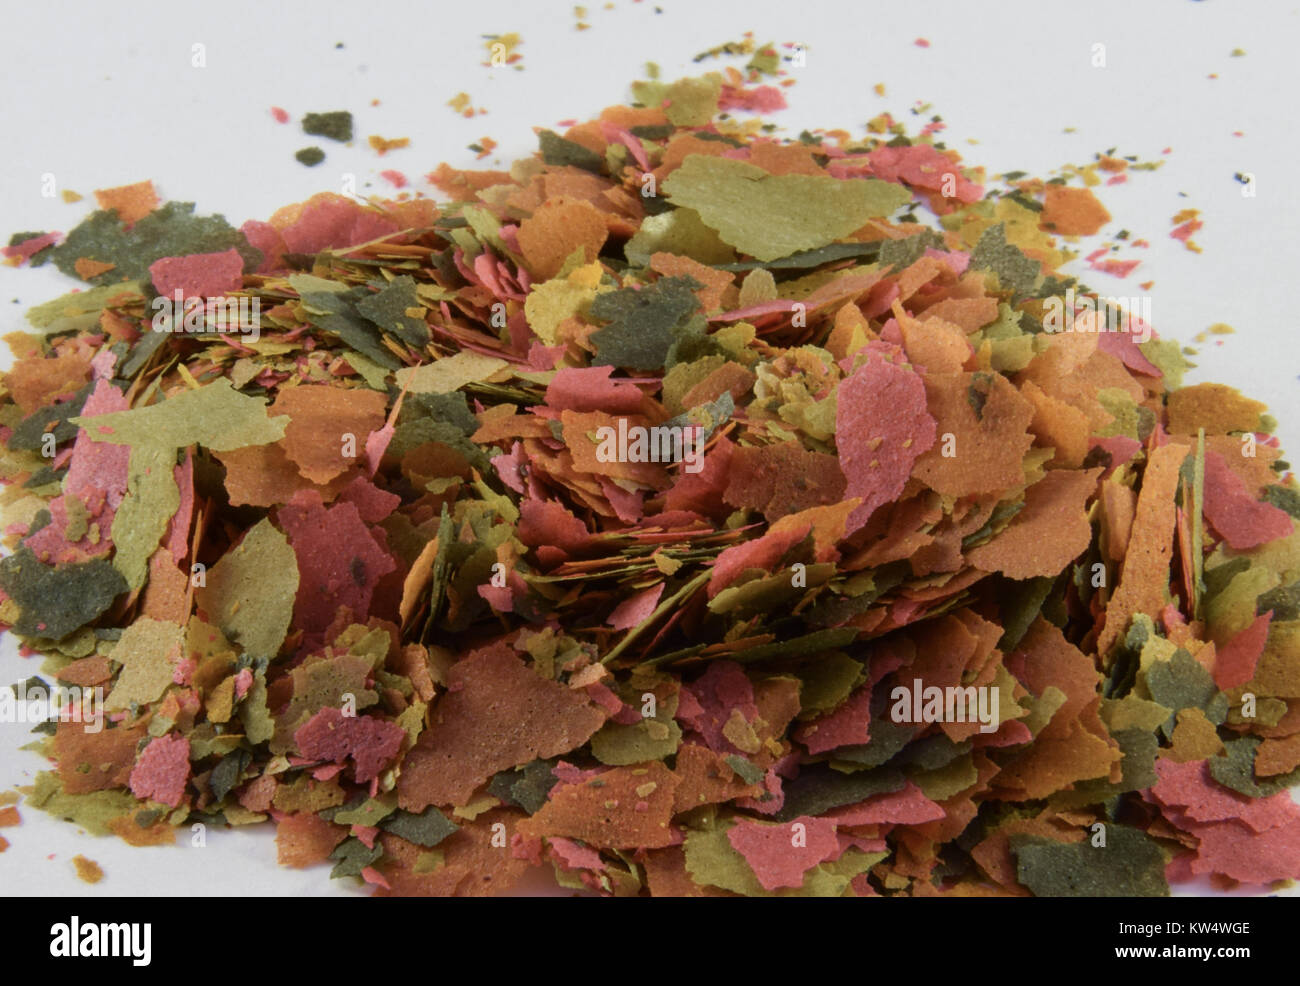 A pile of fish food flakes for tropical fish - Stock Image